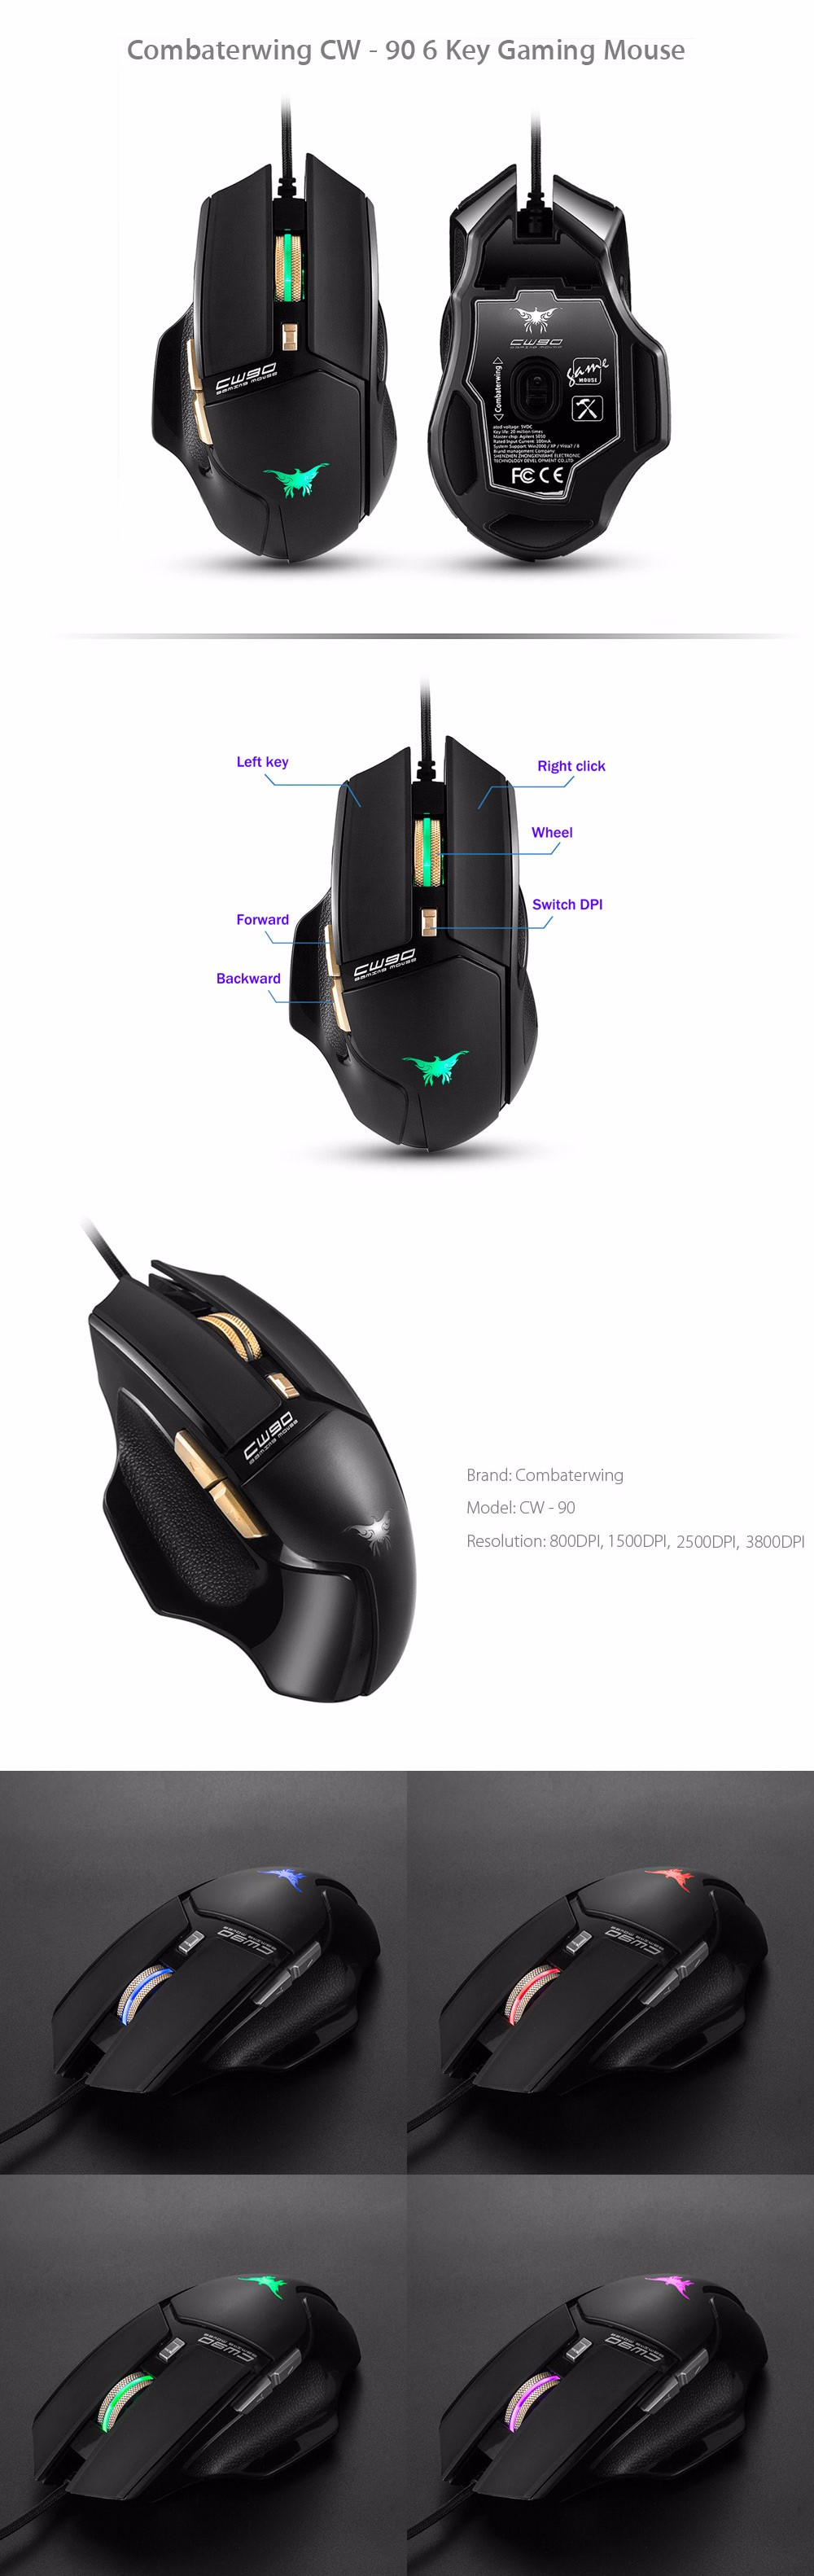 Combaterwing Cw 90 6 Key Gaming Mouse 1288 Free Shipping Keyboard Wireless And Combo Hk 3800 Dpi With Ergonomic Design Black